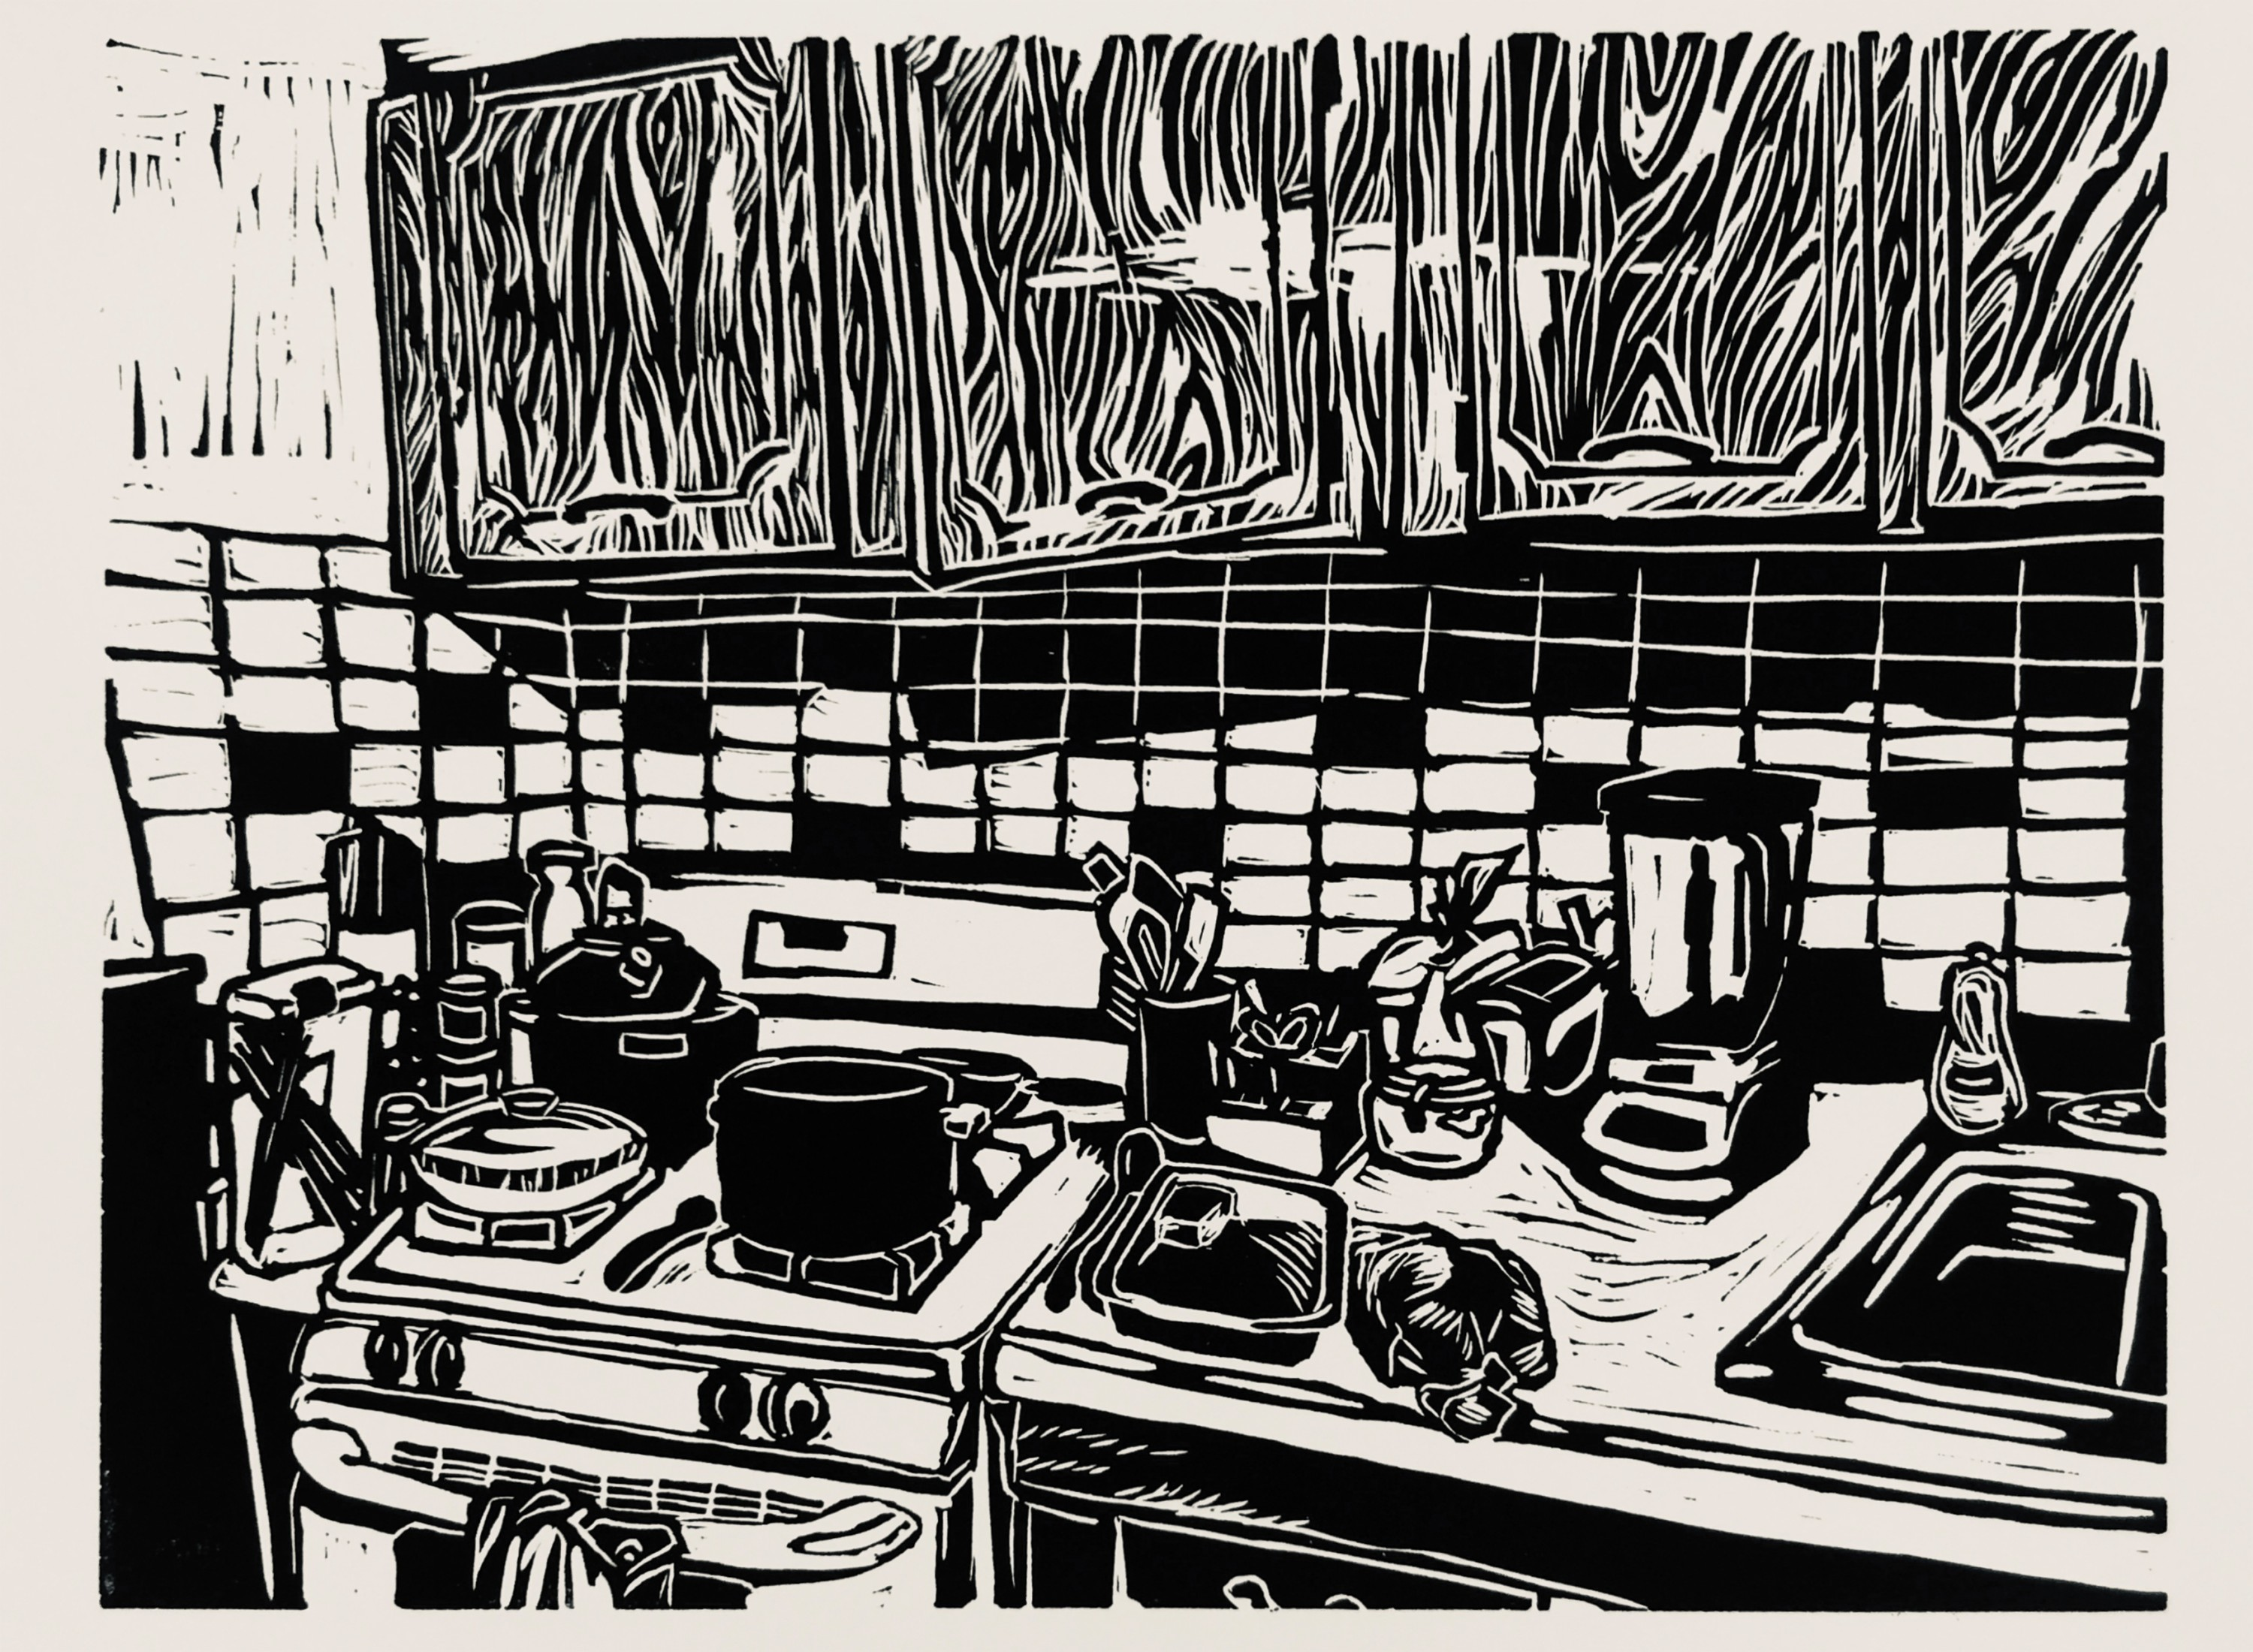 A black and white print of a kitchen space.